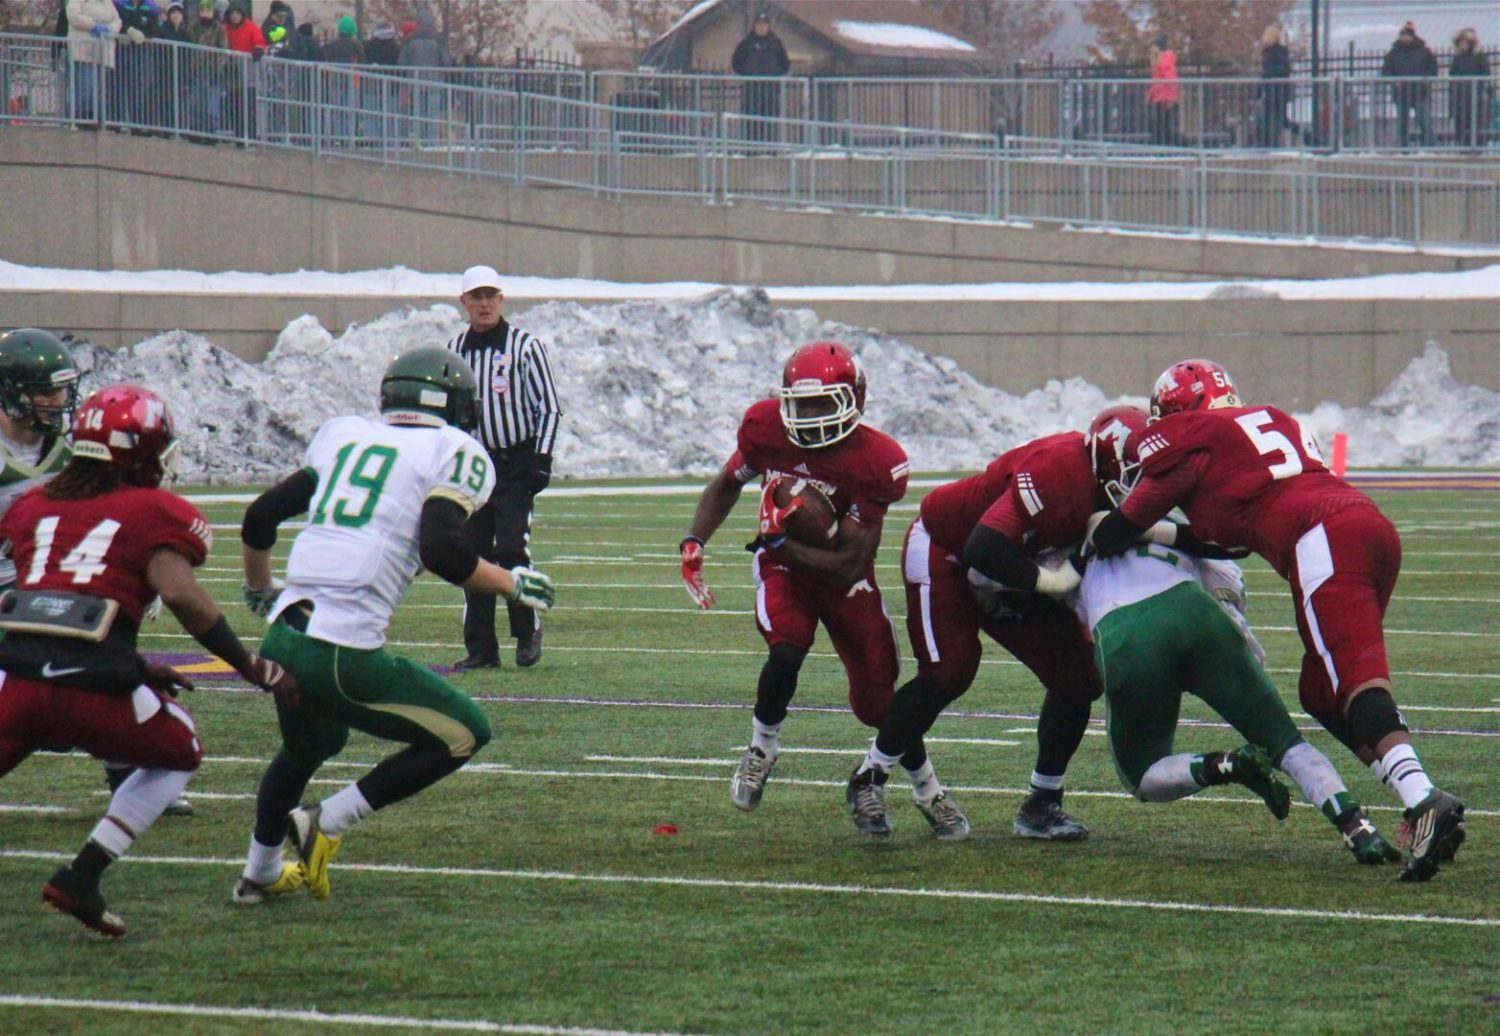 Division 3 football state final preview: Big Reds primed to finish the job in their third straight visit to Ford Field